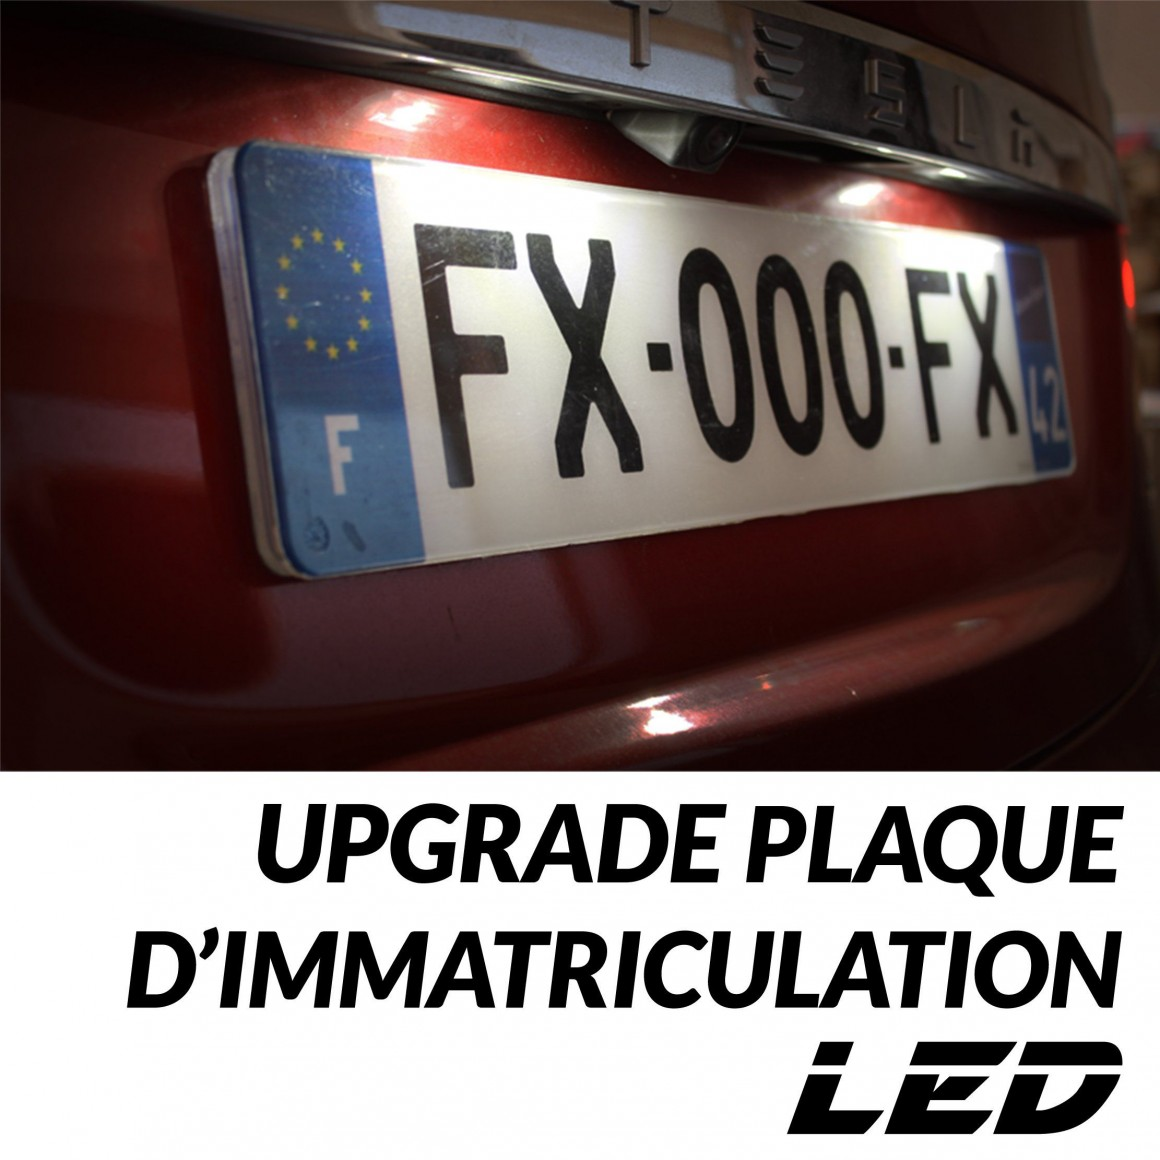 Upgrade LED plaque immatriculation i10 (PA) - HYUNDAI